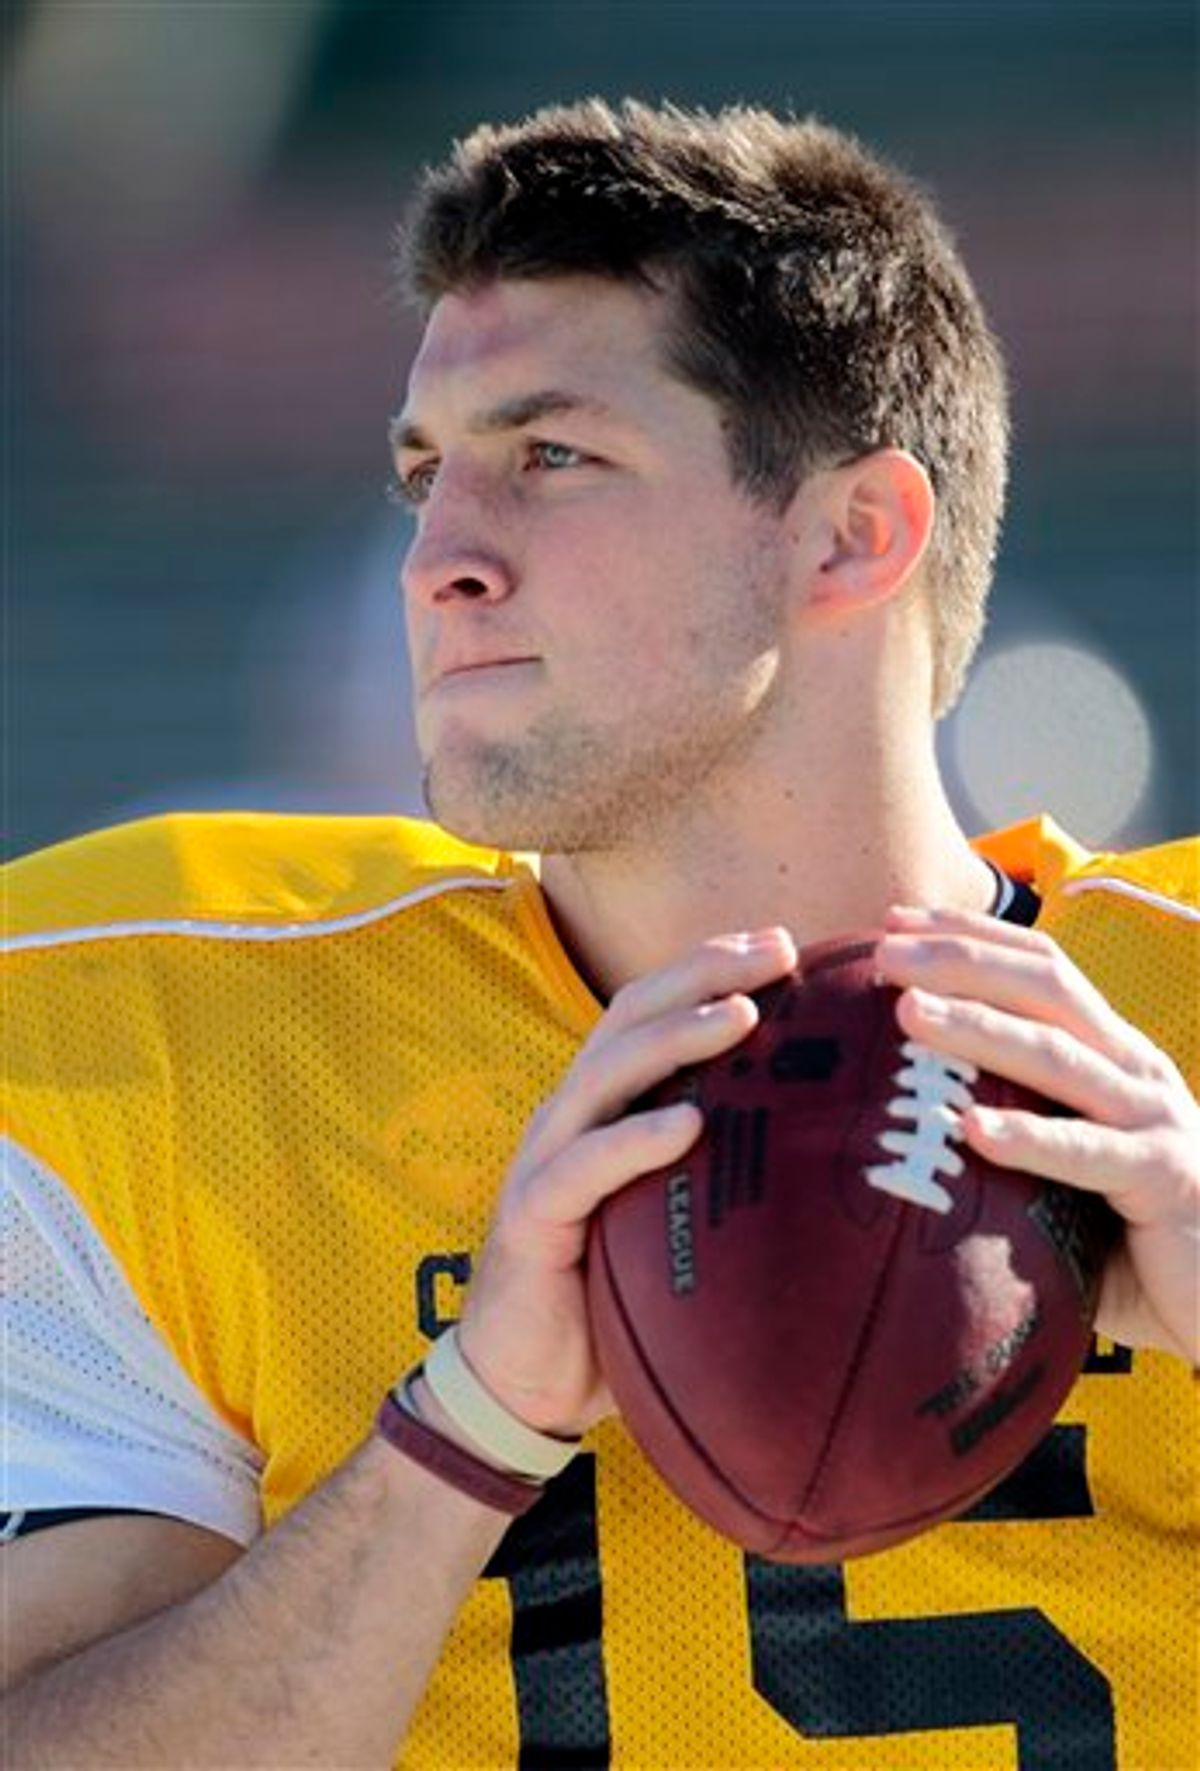 South squad quarterback Tim Tebow, of Florida, throws during practice for the NCAA college football Senior Bowl game, on Tuesday Jan. 26, 2010,  in Mobile, Ala.. (AP Photo/Dave Martin)   (AP)